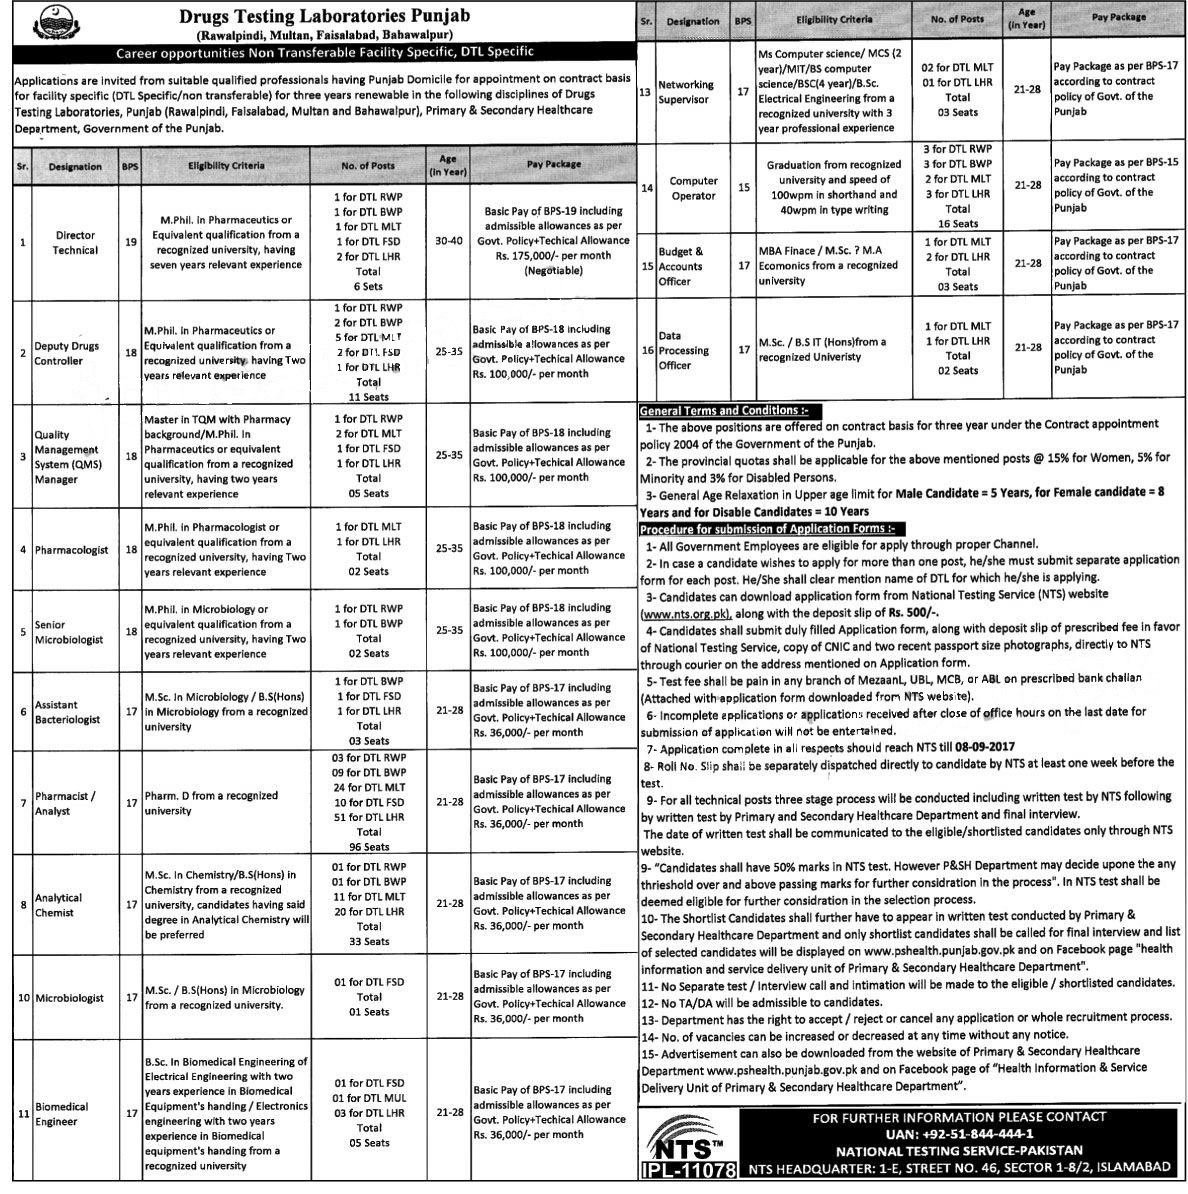 Drugs Testing Laboratory Lahore Jobs 2017 NTS Application Form Download